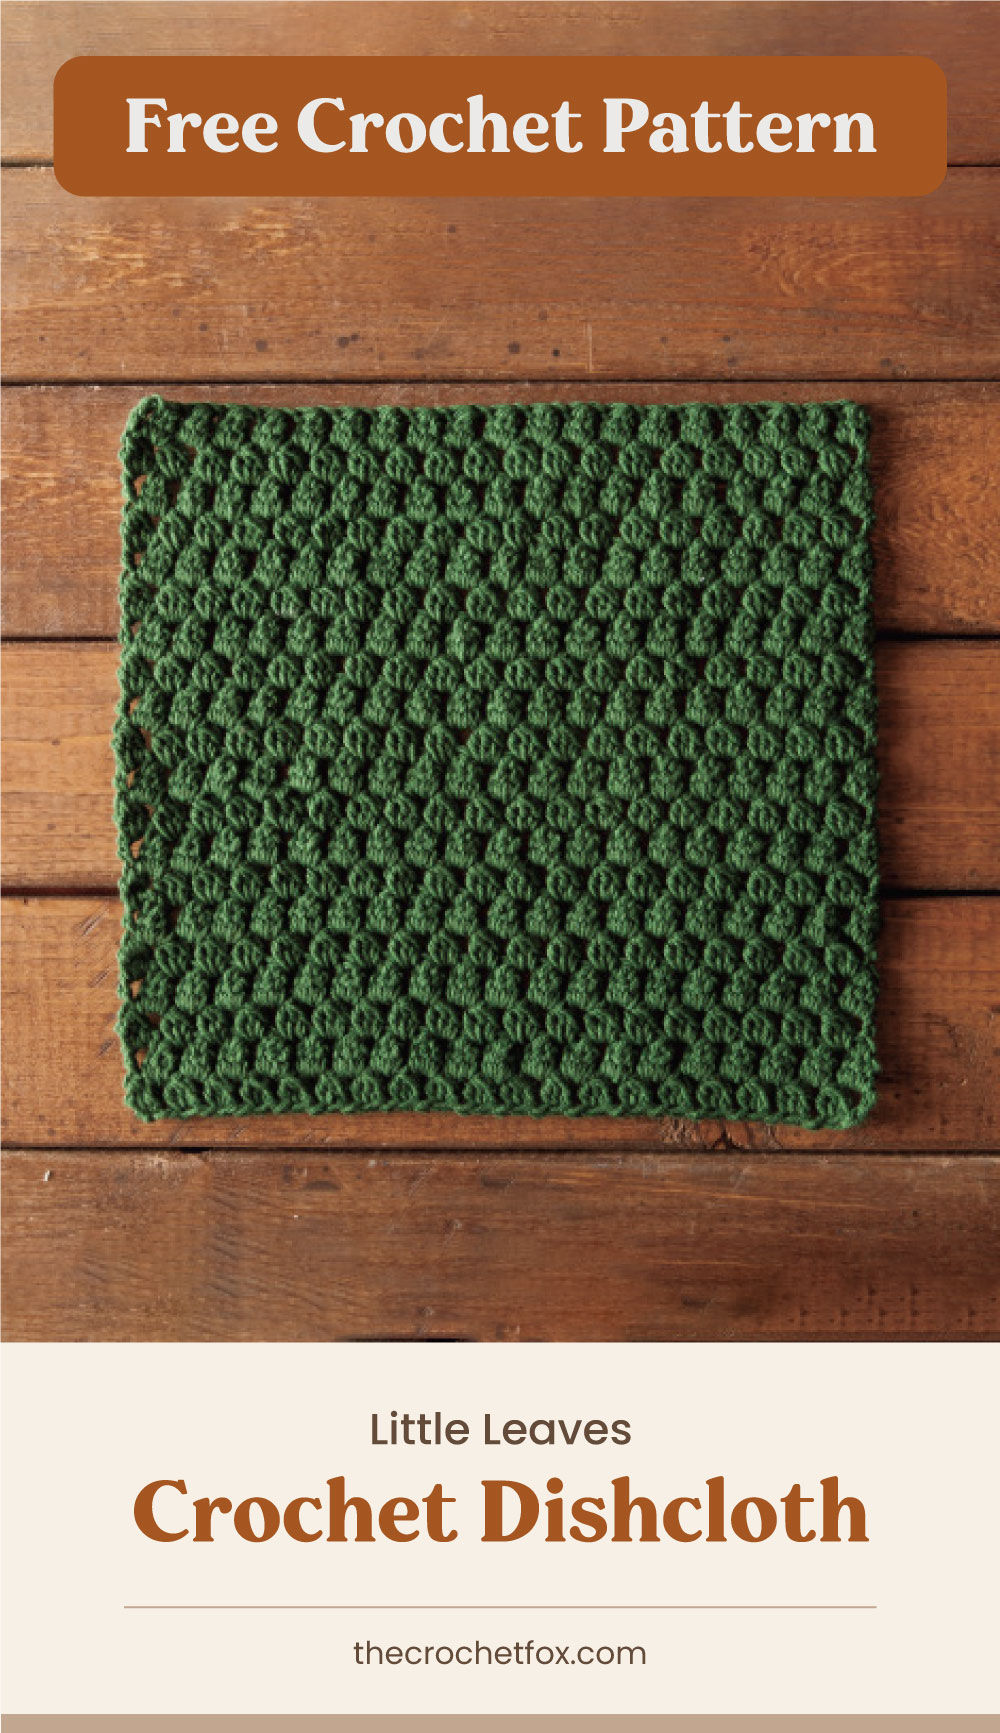 """Text area which says """"Free Crochet Pattern"""" next to a green crochet dishcloth laid on a wooden surface followed by another text area which says """"Little Leaves Crochet Dishcloth, thecrochetfox.com"""""""